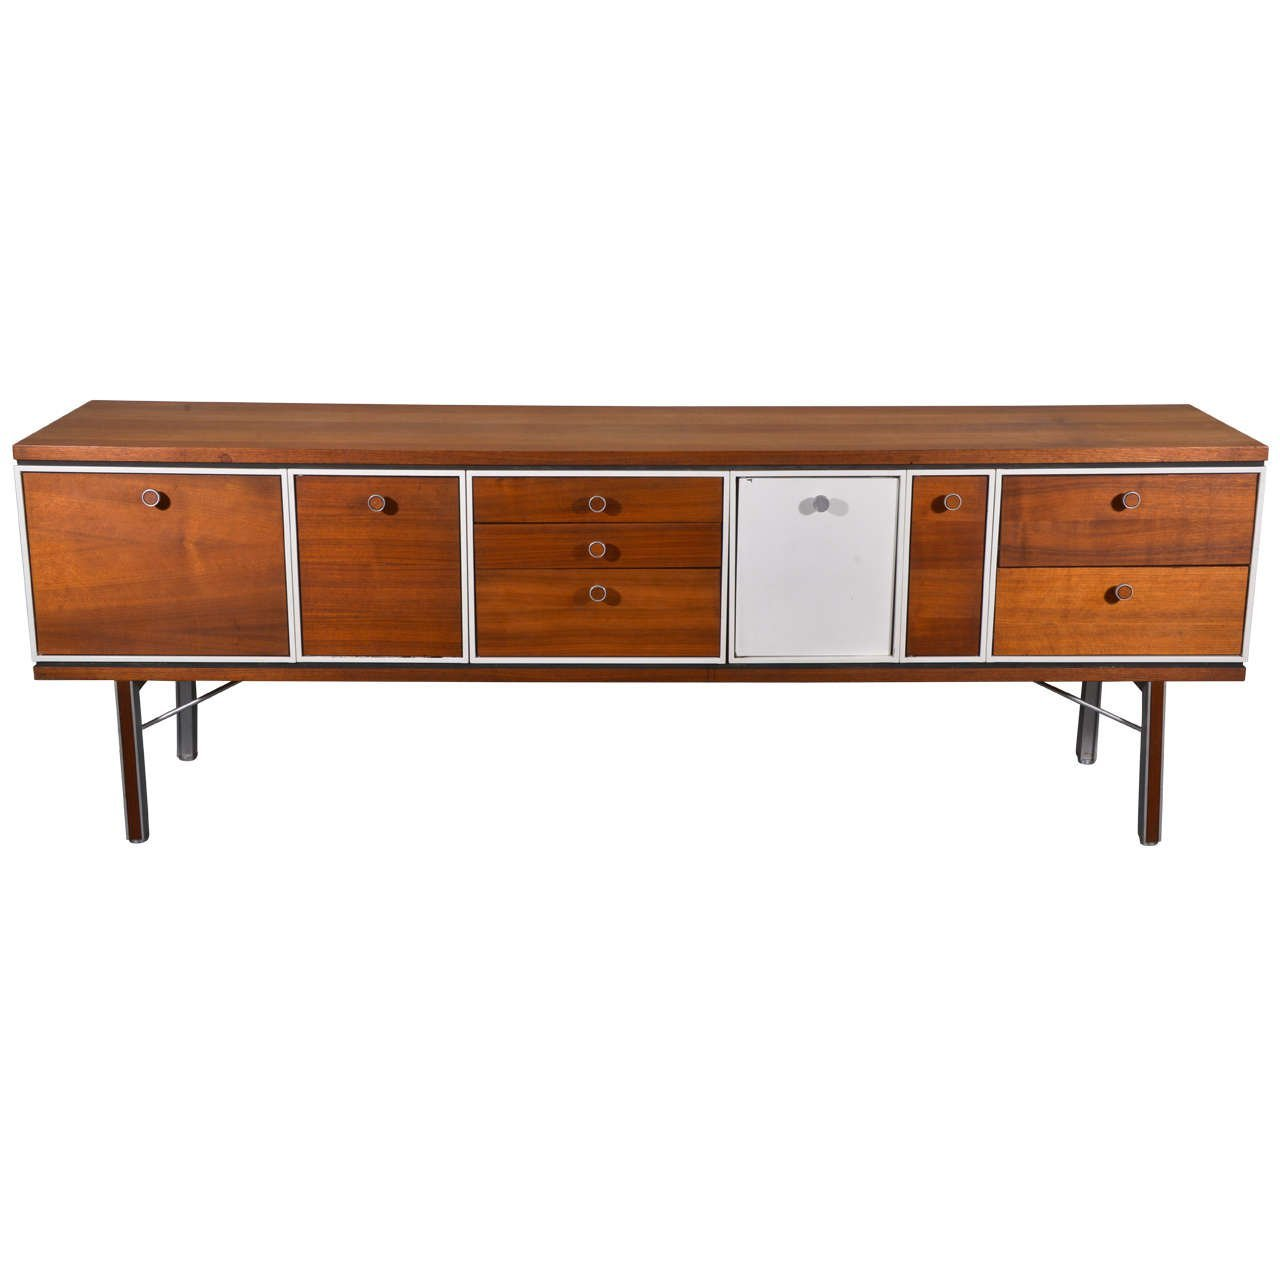 [SOLD] Rare Cabinet manufactured for the IBM Pavillion / NY Worlds Fair - The Exchange Int